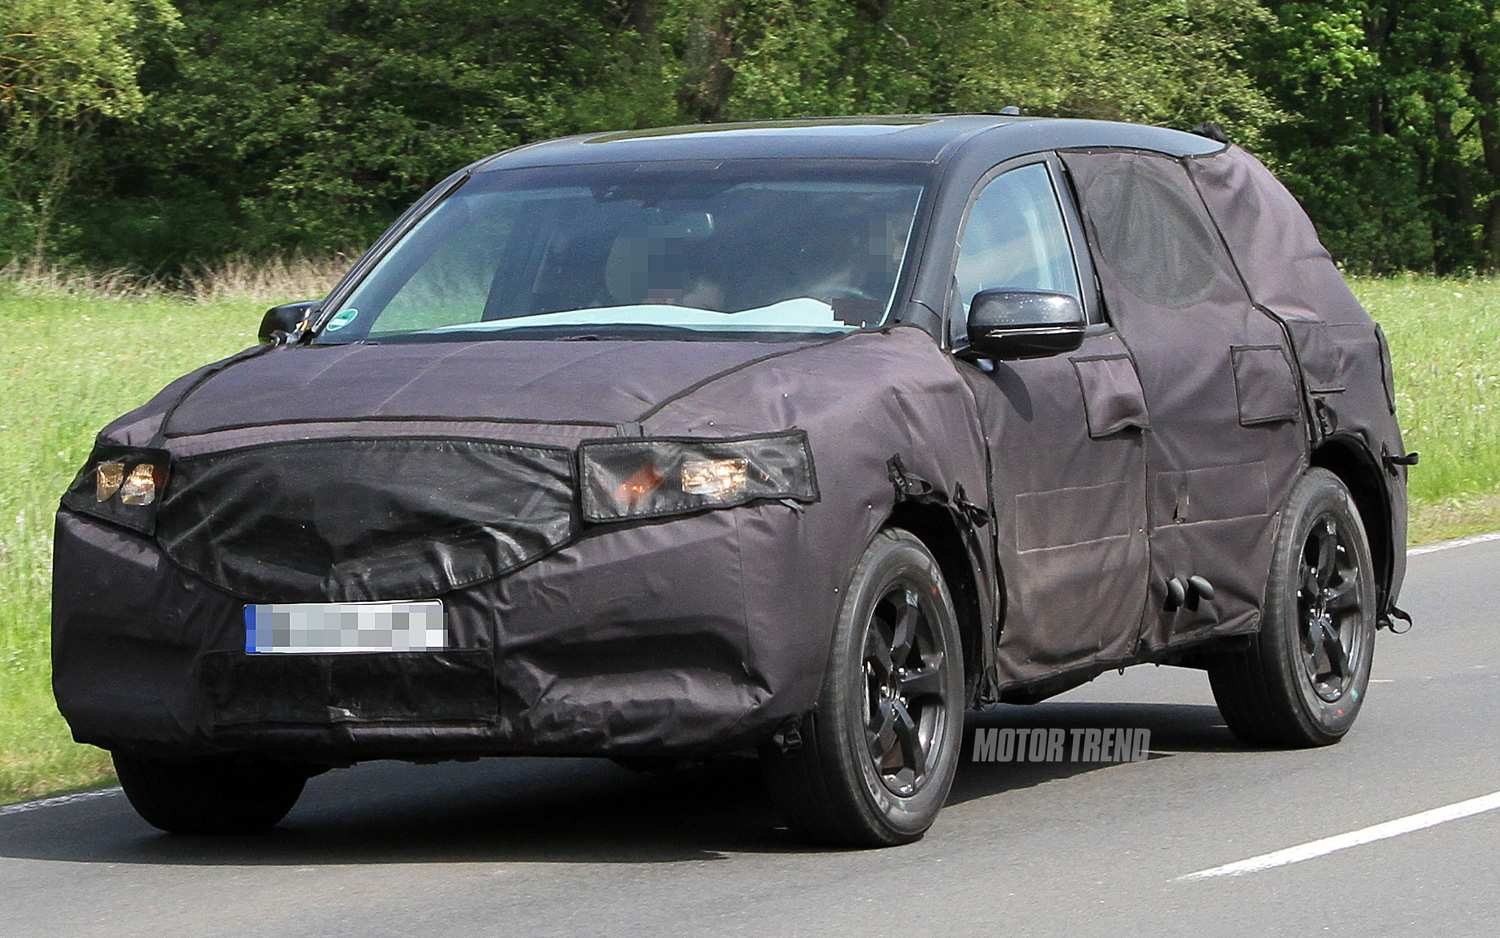 48 Best Acura Mdx New Body Style 2020 Images